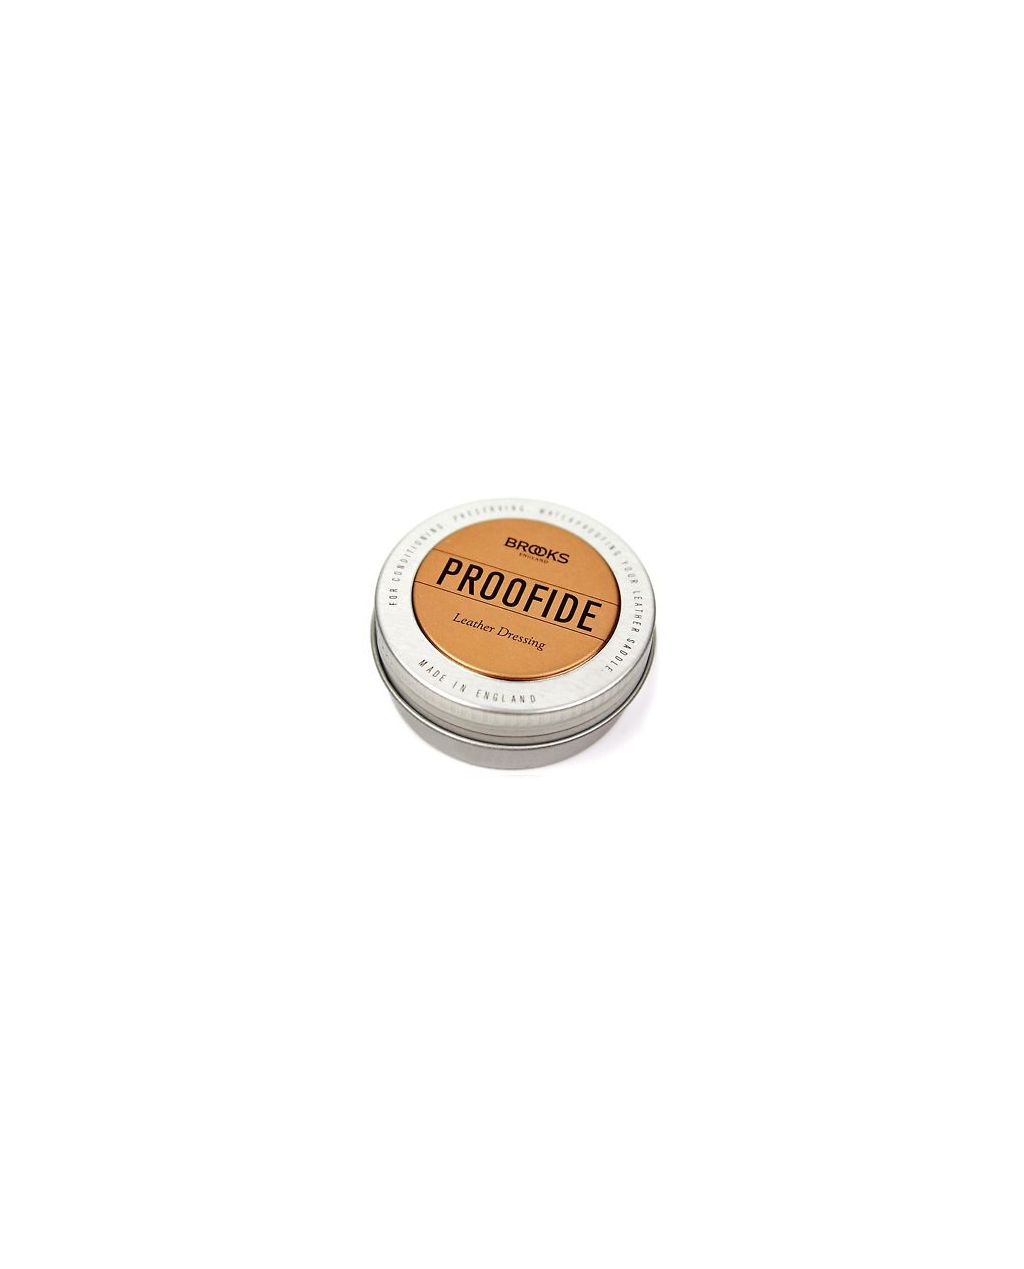 Brooks Proofide 40g Tin